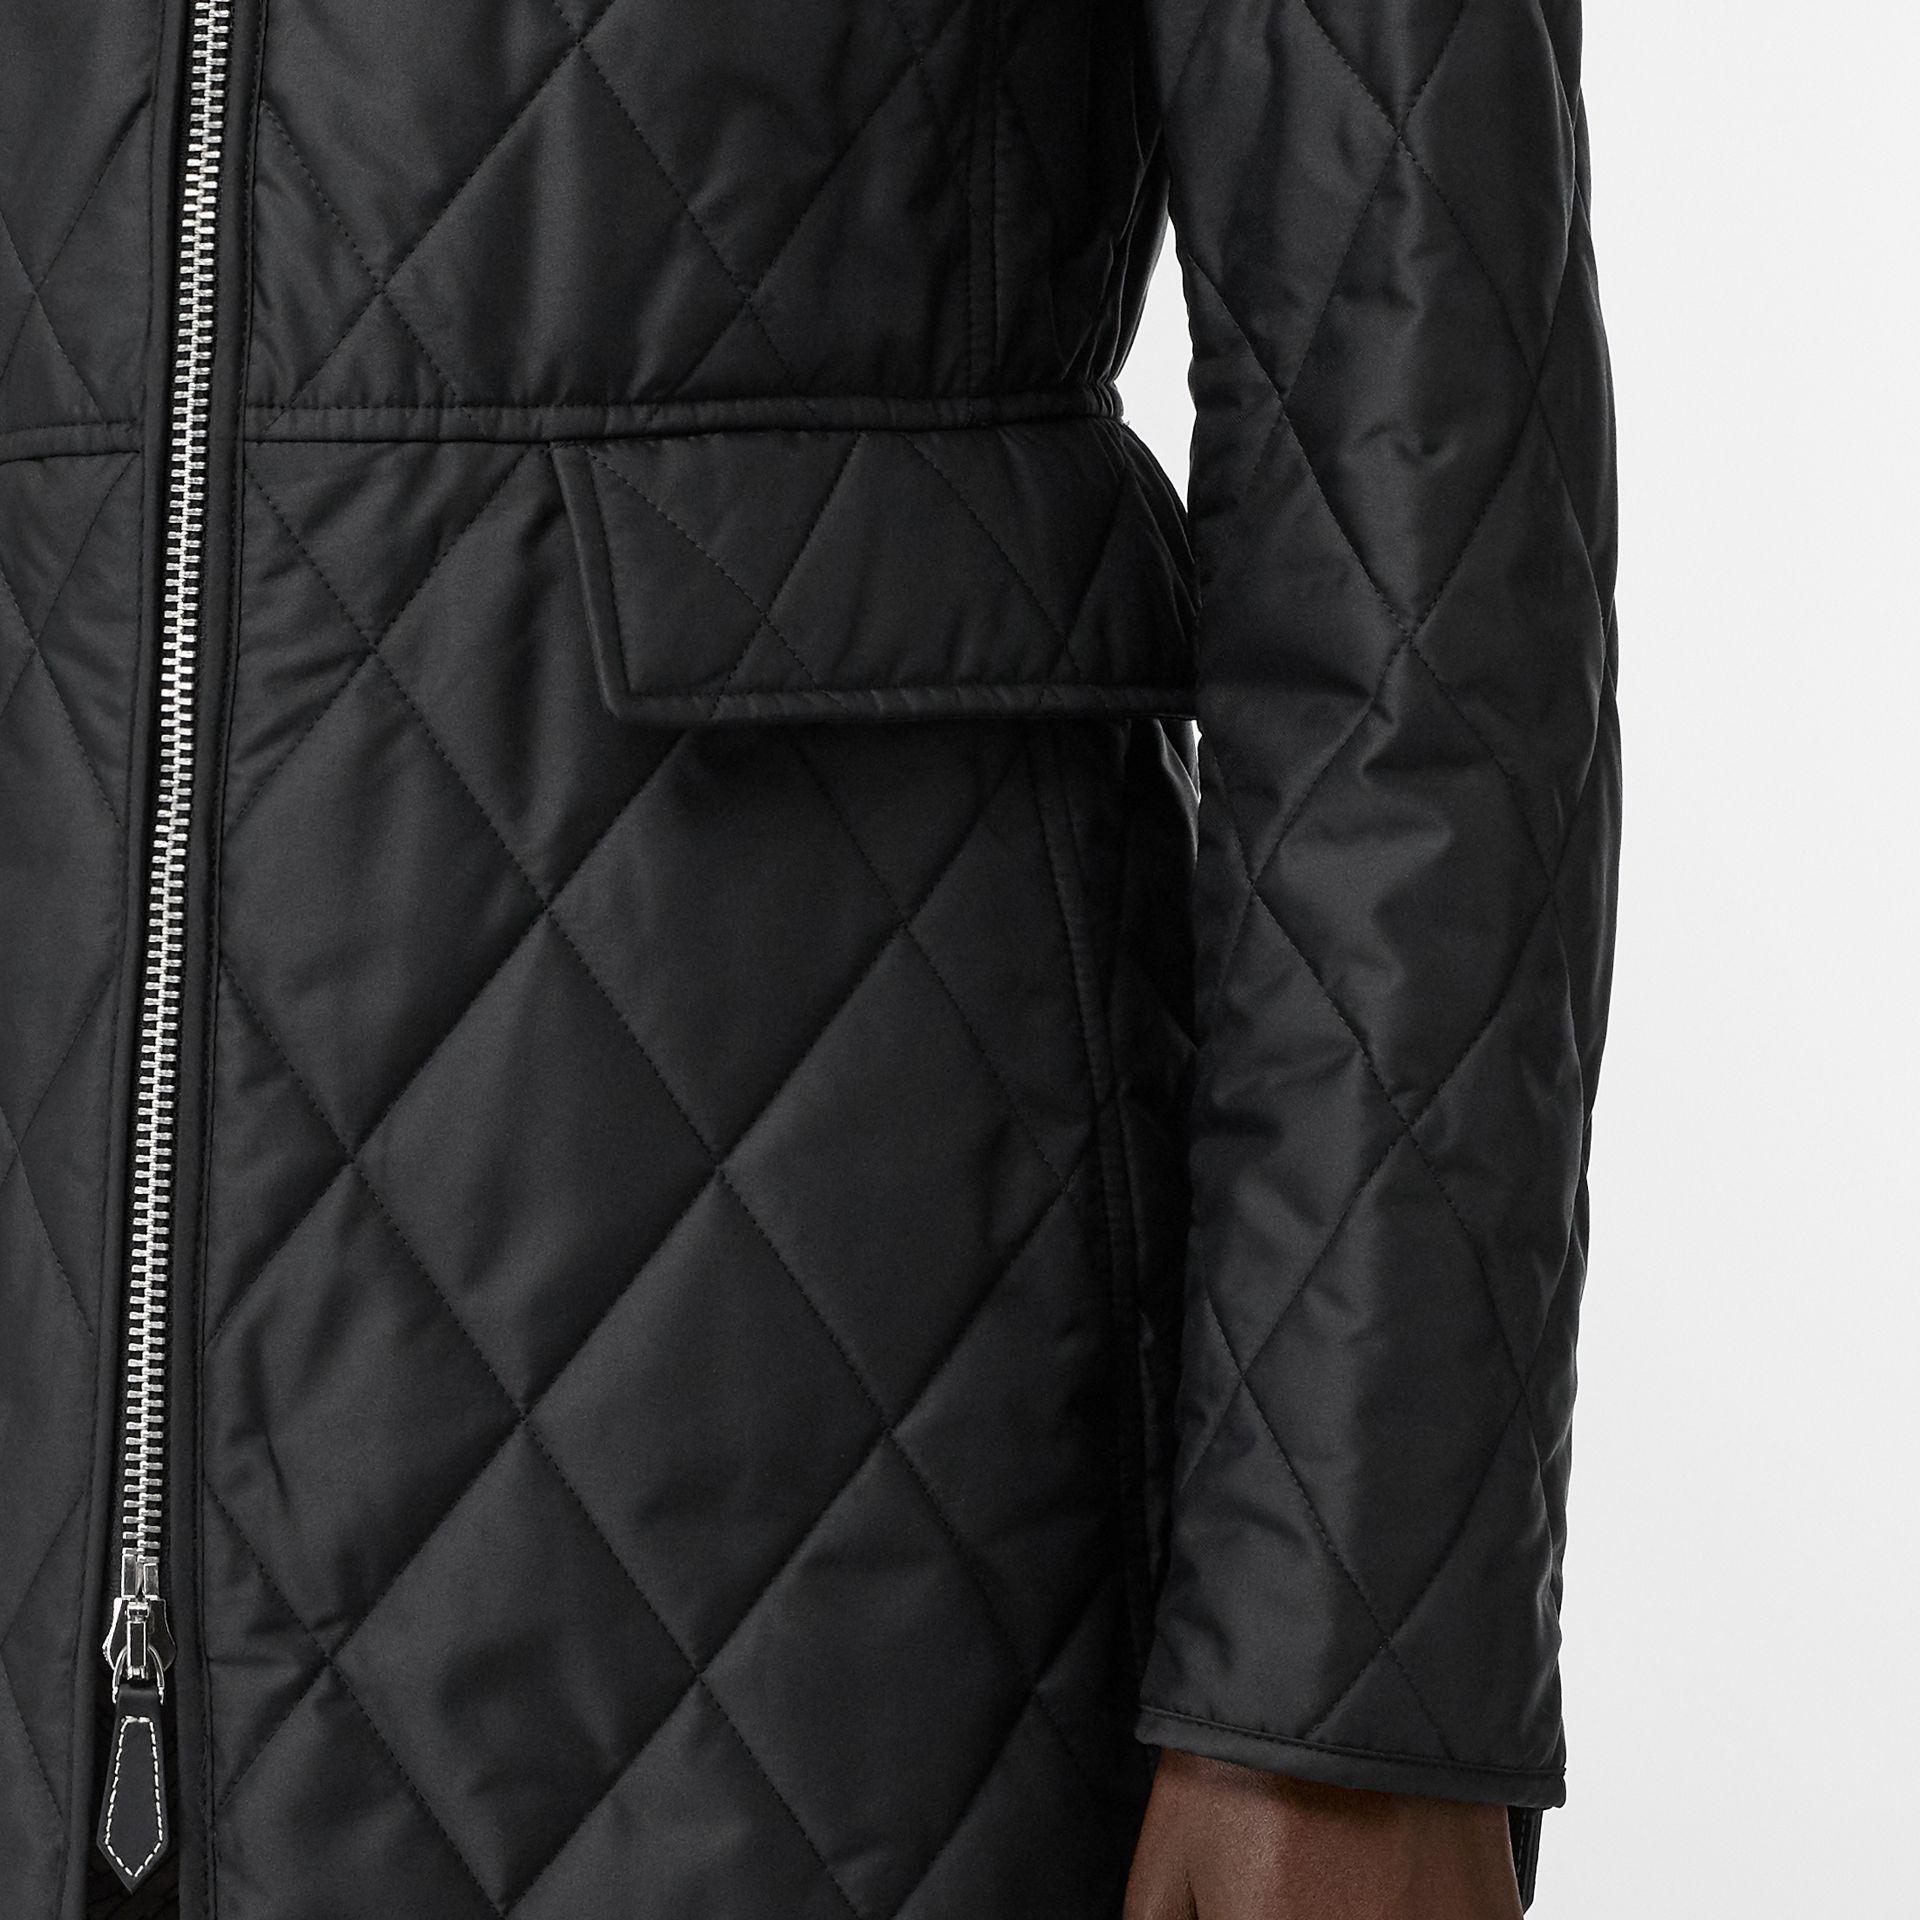 Monogram Motif Quilted Riding Coat in Black - Women | Burberry - gallery image 4